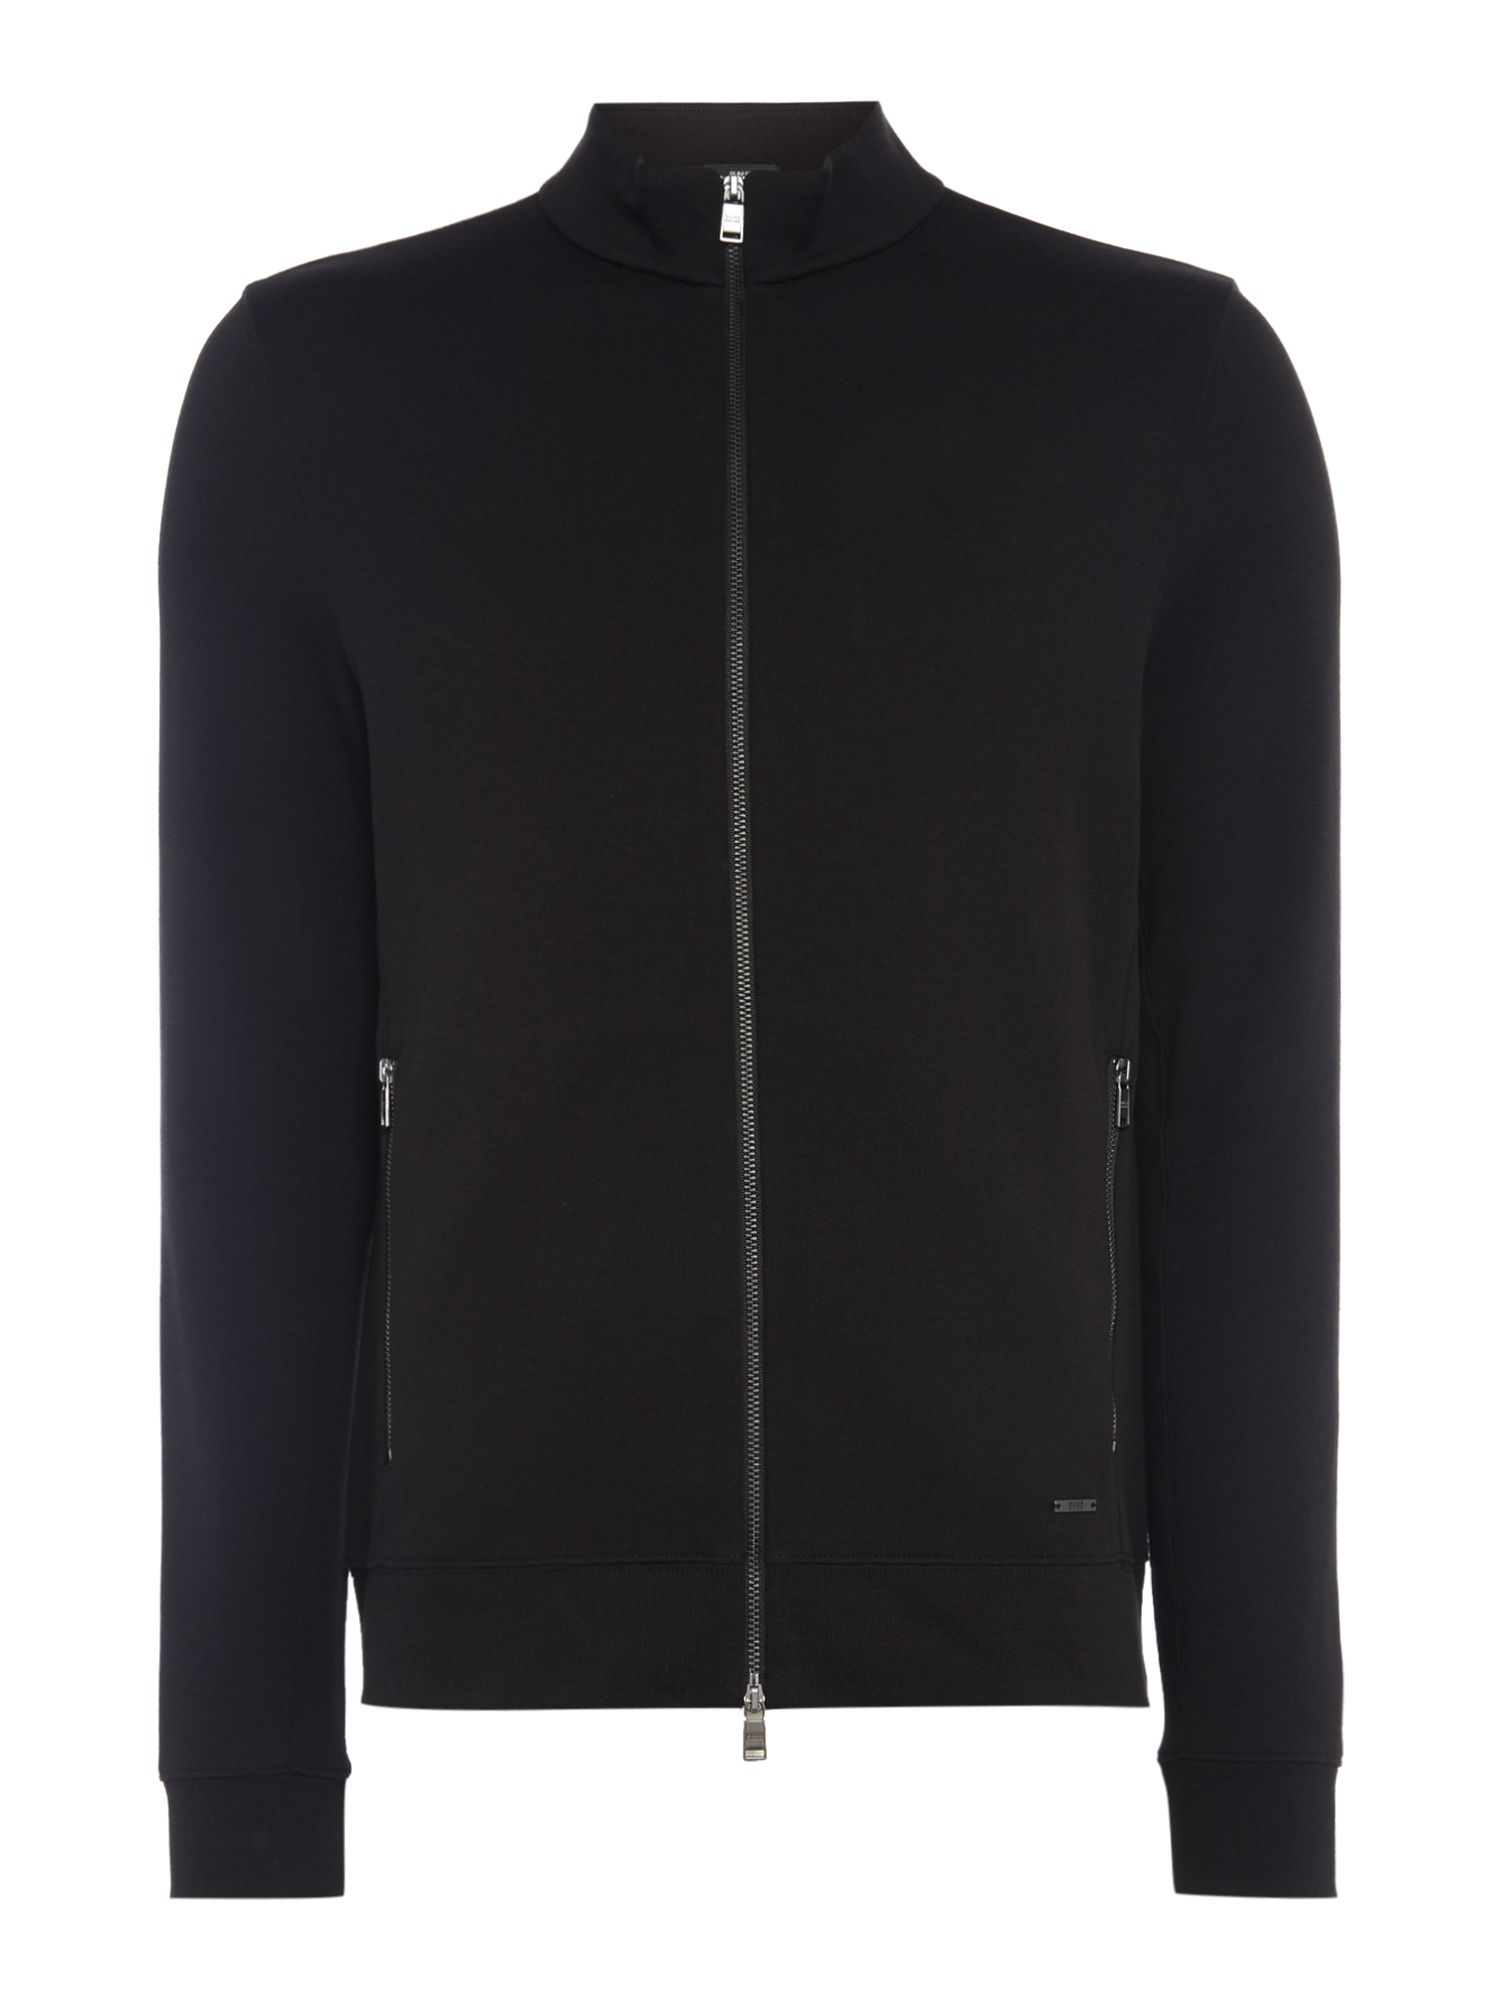 Men's Hugo Boss Soule 08 zip up sweatshirt, Black